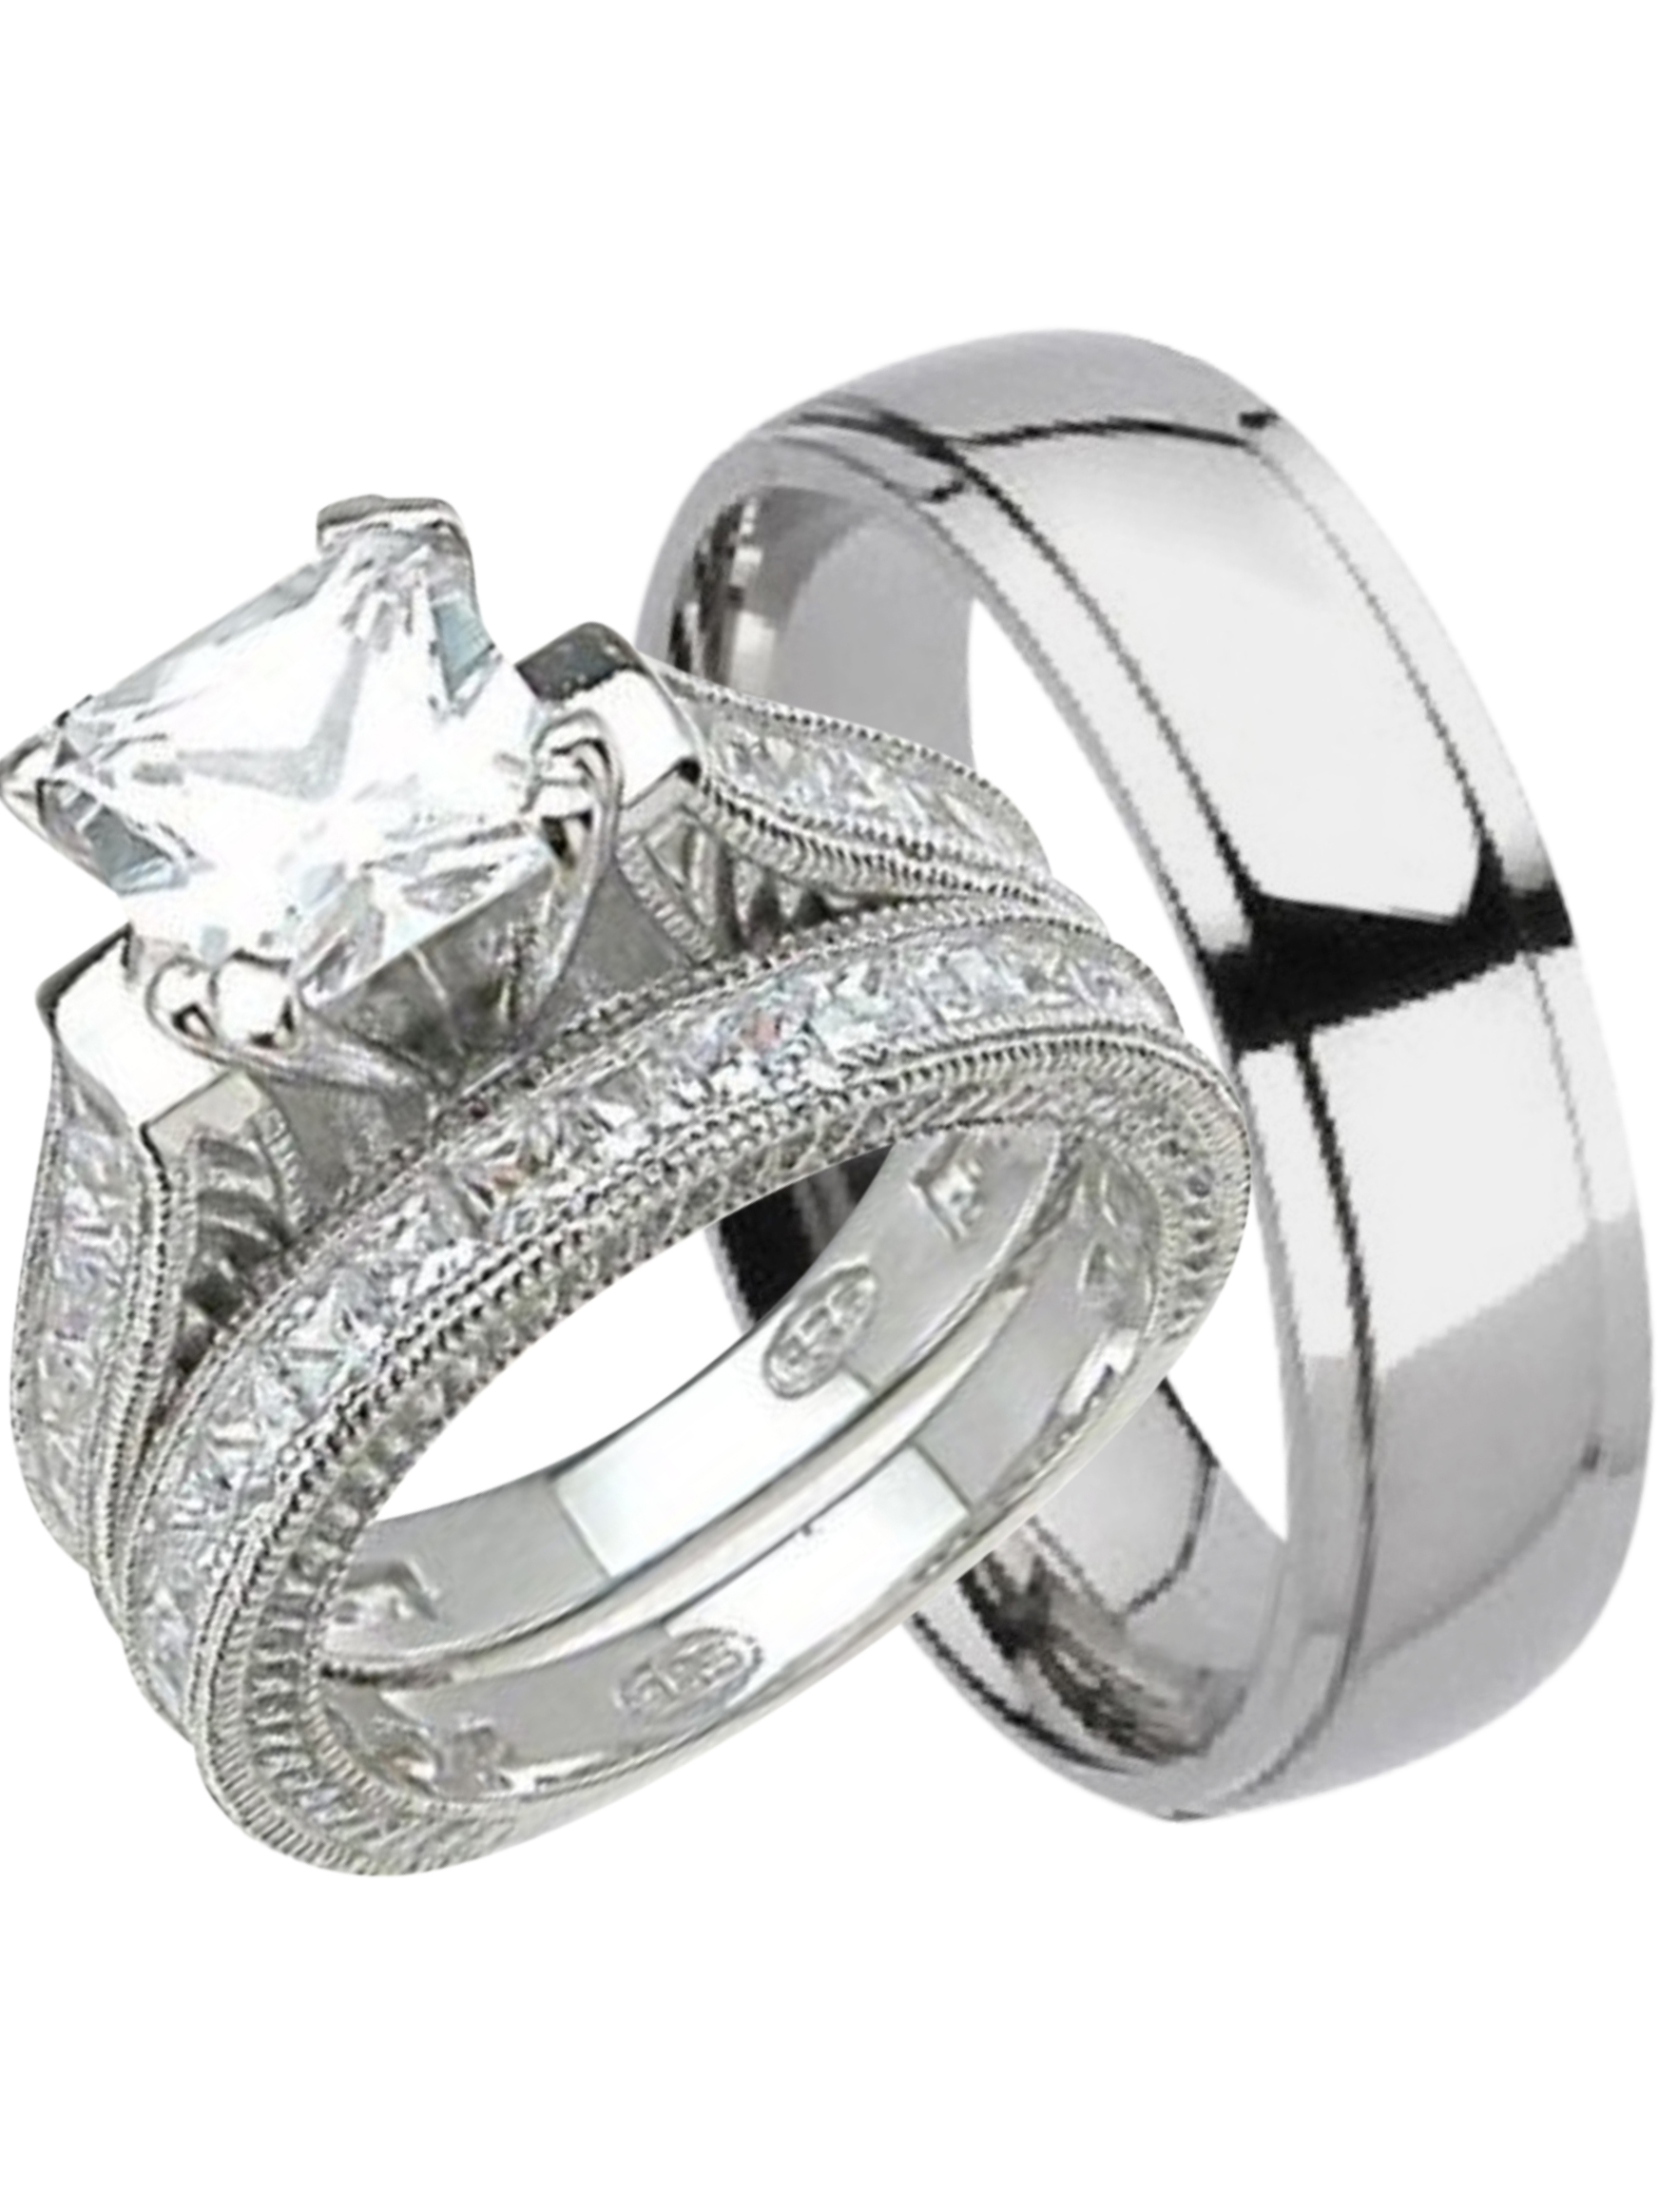 His and Hers Wedding Ring Set Matching Trio Wedding Bands for Him (Titanium) and Her (Sterling Silver) (6/9)